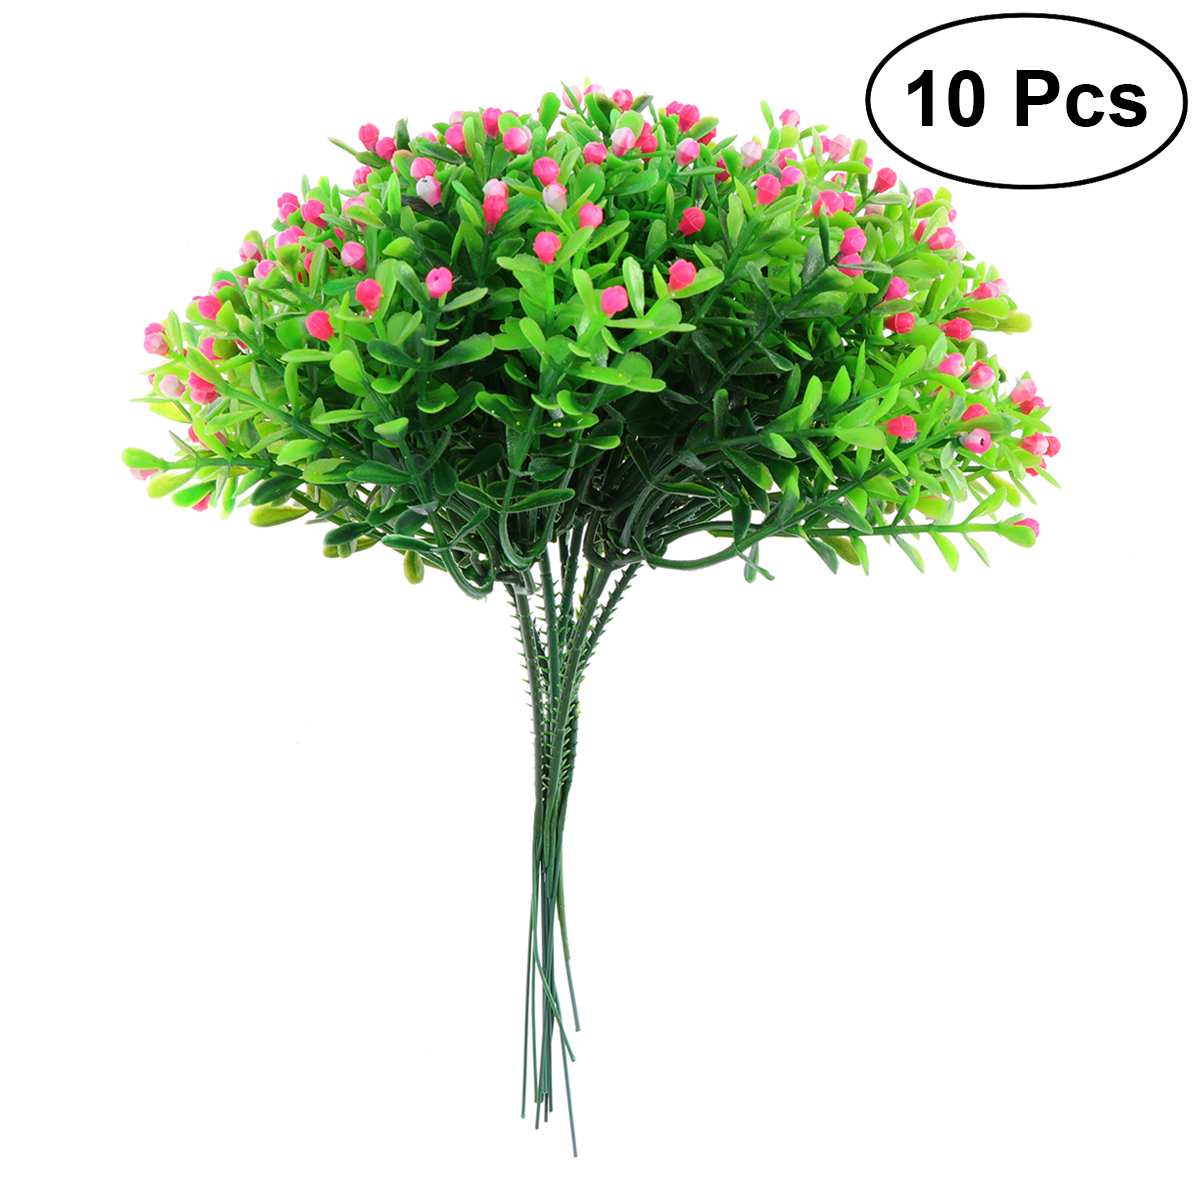 10pcs Artificial Fake Flower Faux Plastic Milan Grass Flowers Simulation Plants Greenery For Indoor Outside Wedding Home(Pink)